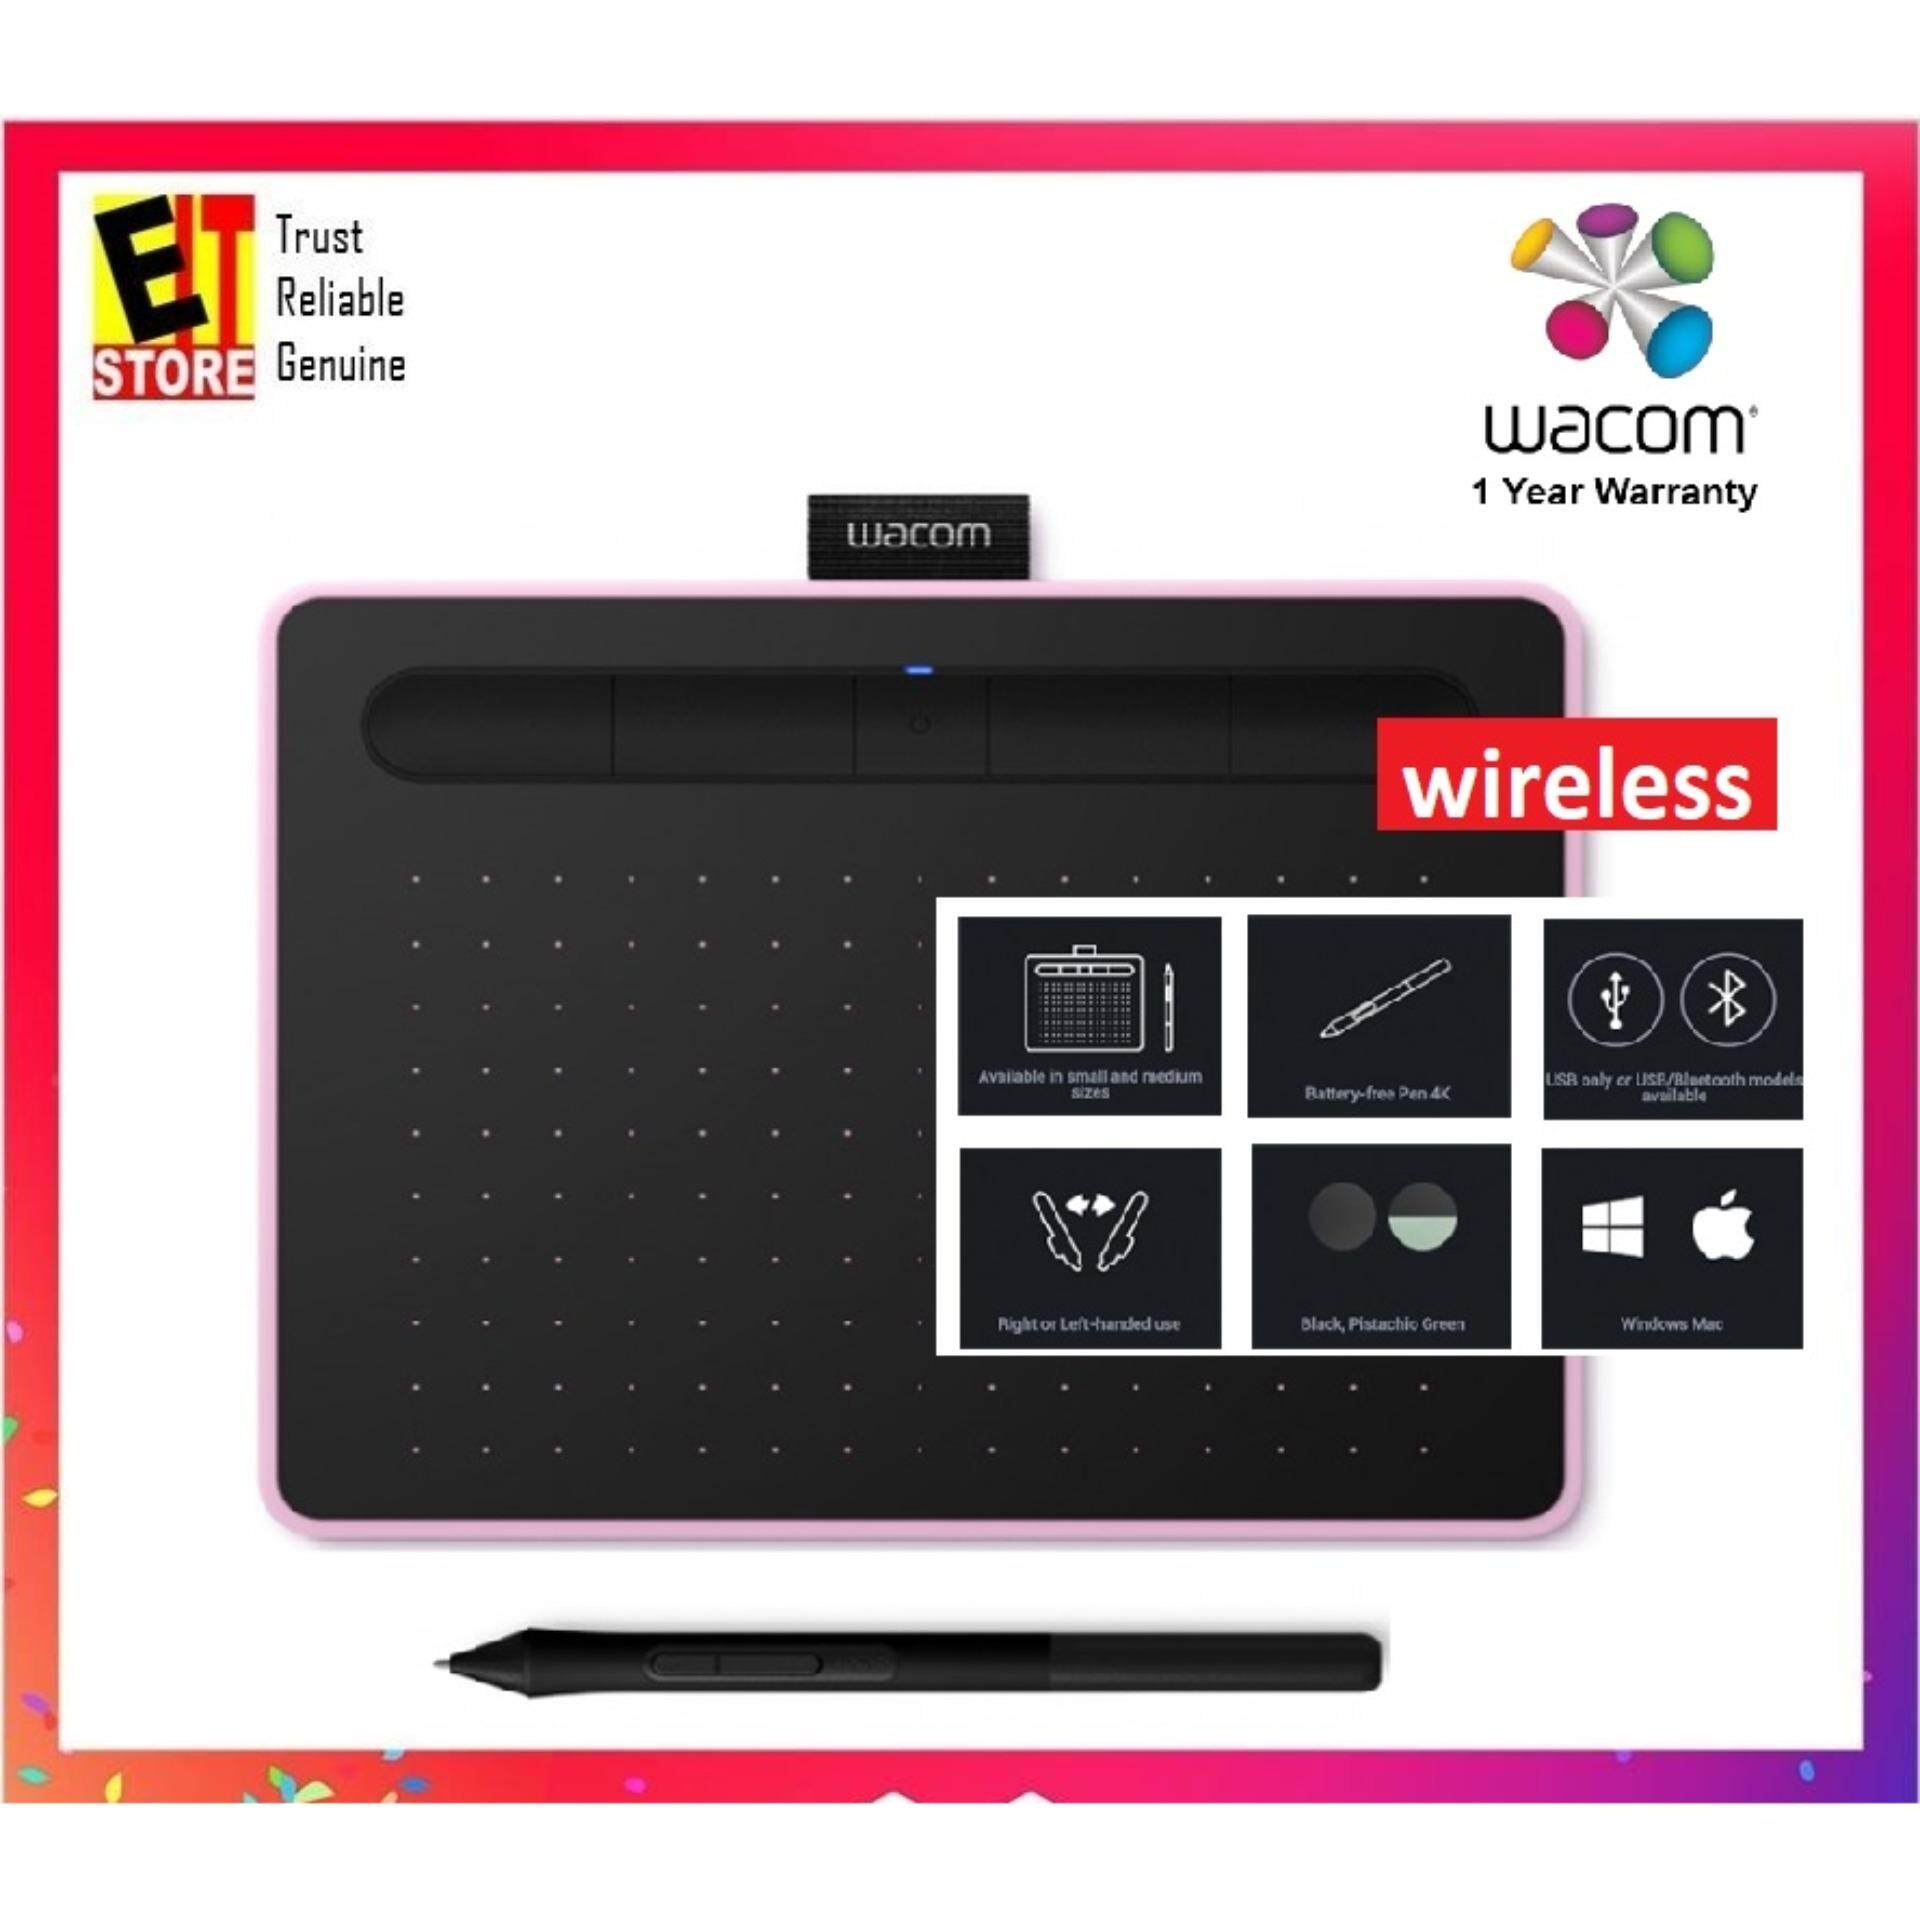 Latest Wacom Tablets for the Best Prices in Malaysia